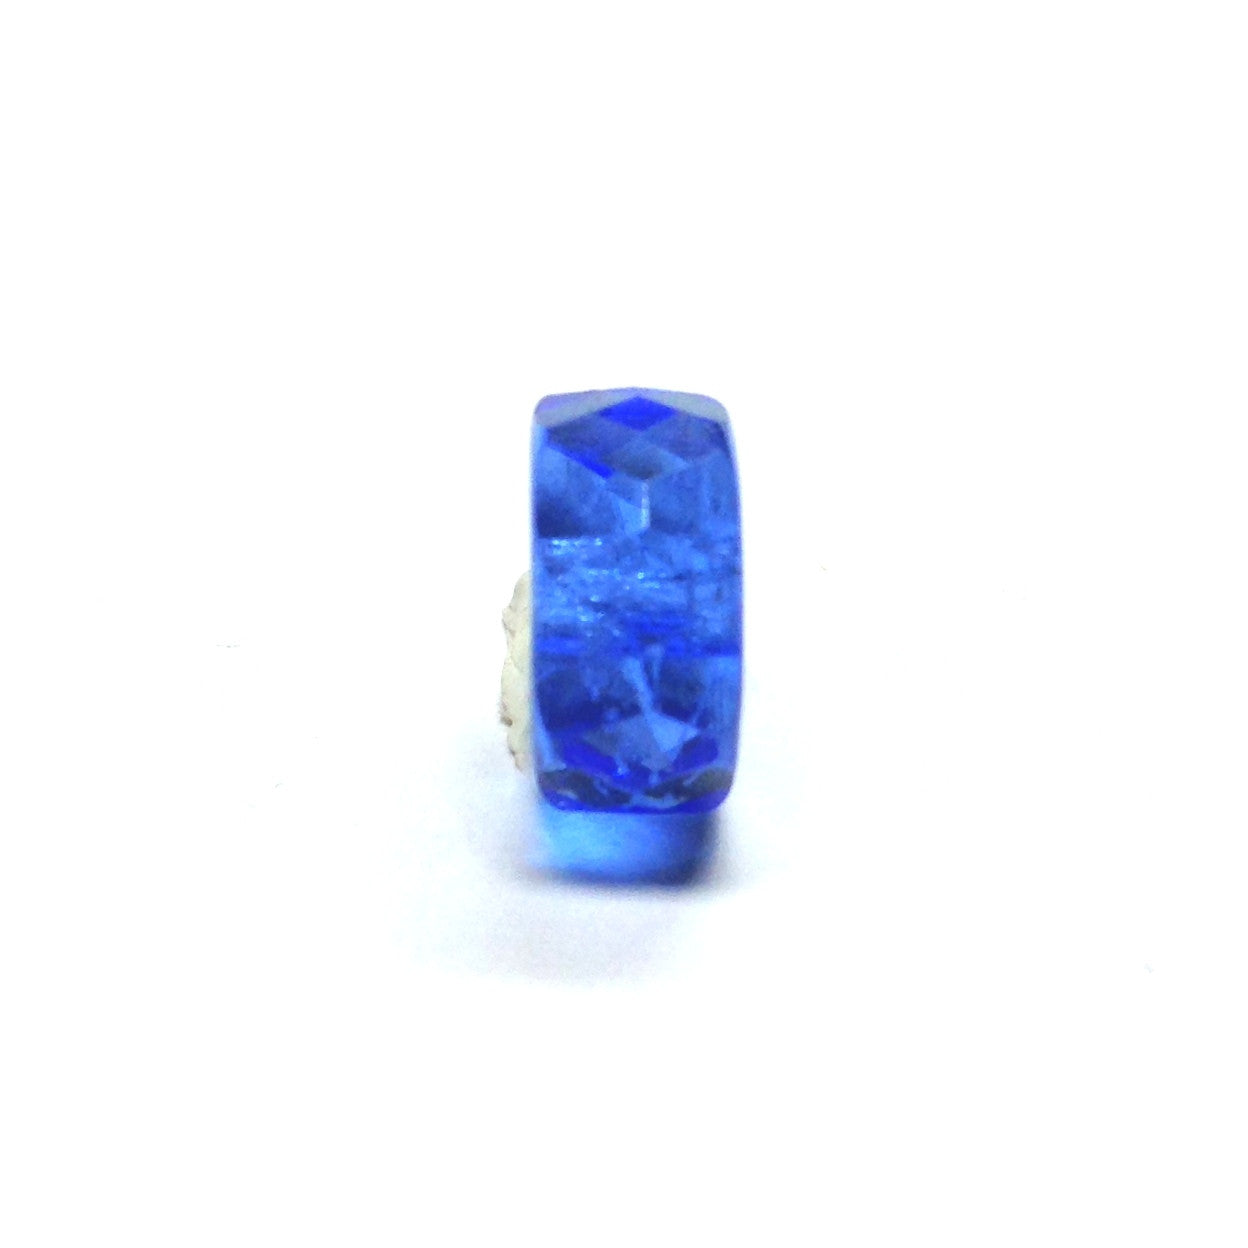 10MM Sapphire Blue Glass Rondel Bead (72 pieces)